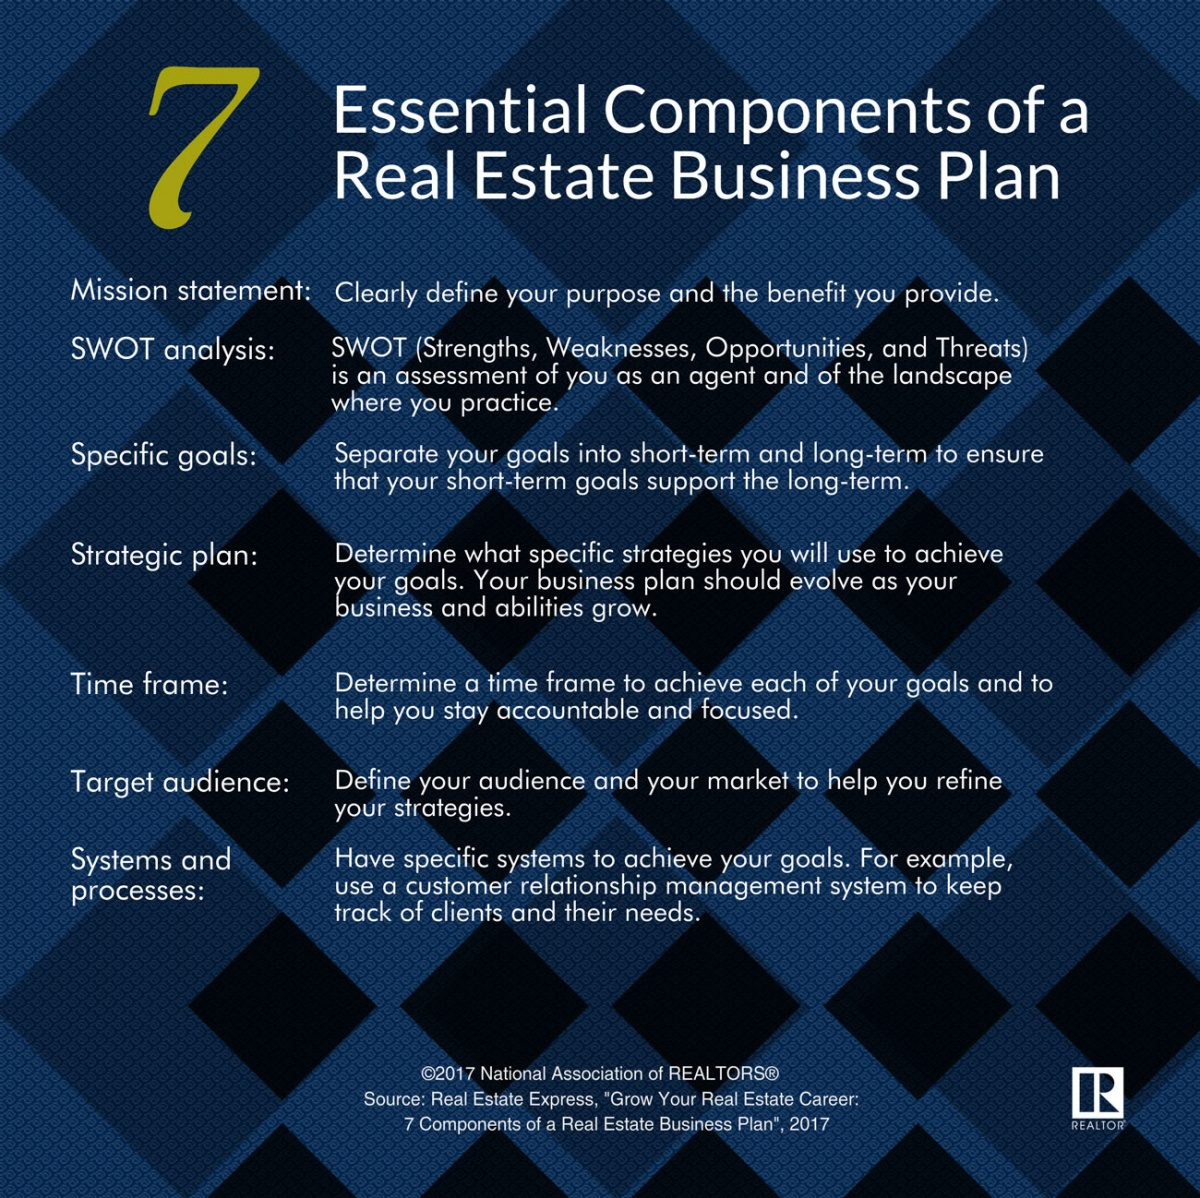 Essential Components of a Real Estate Business Plan